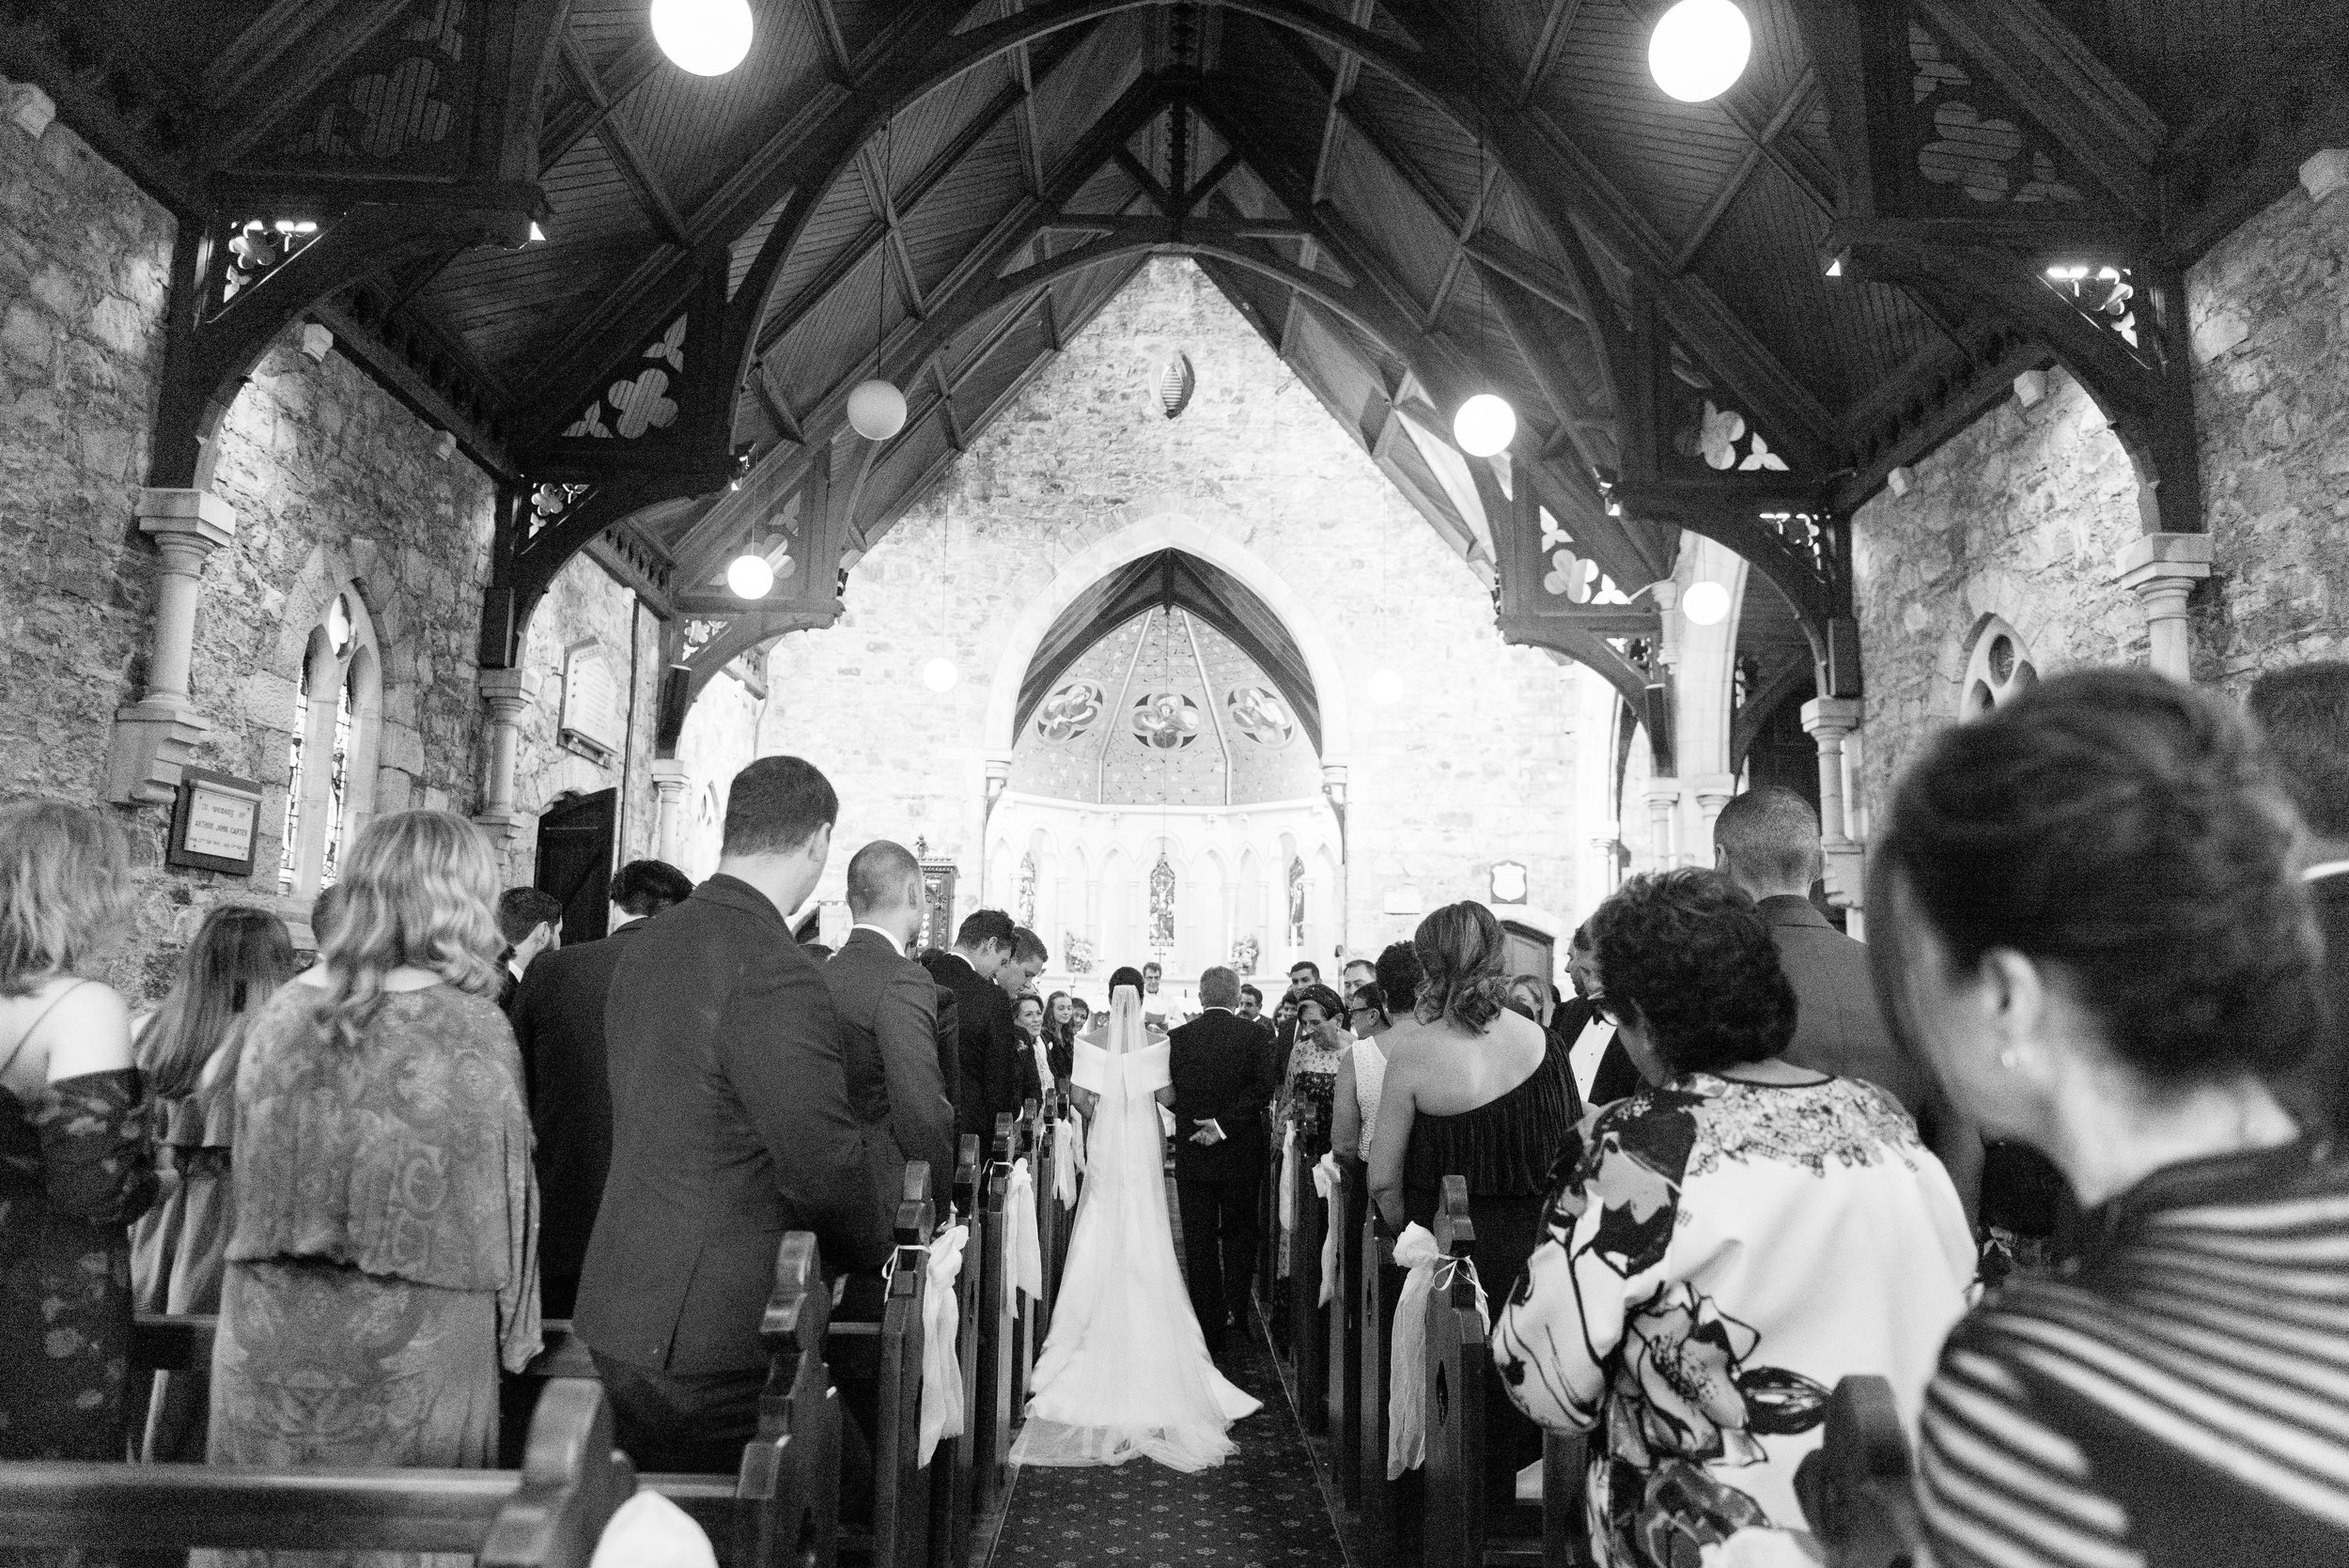 black-bird-brisbane-wedding-photography-film-photography-beautiful-reception-dance-candid-tweed-coast-wedding-65.jpg